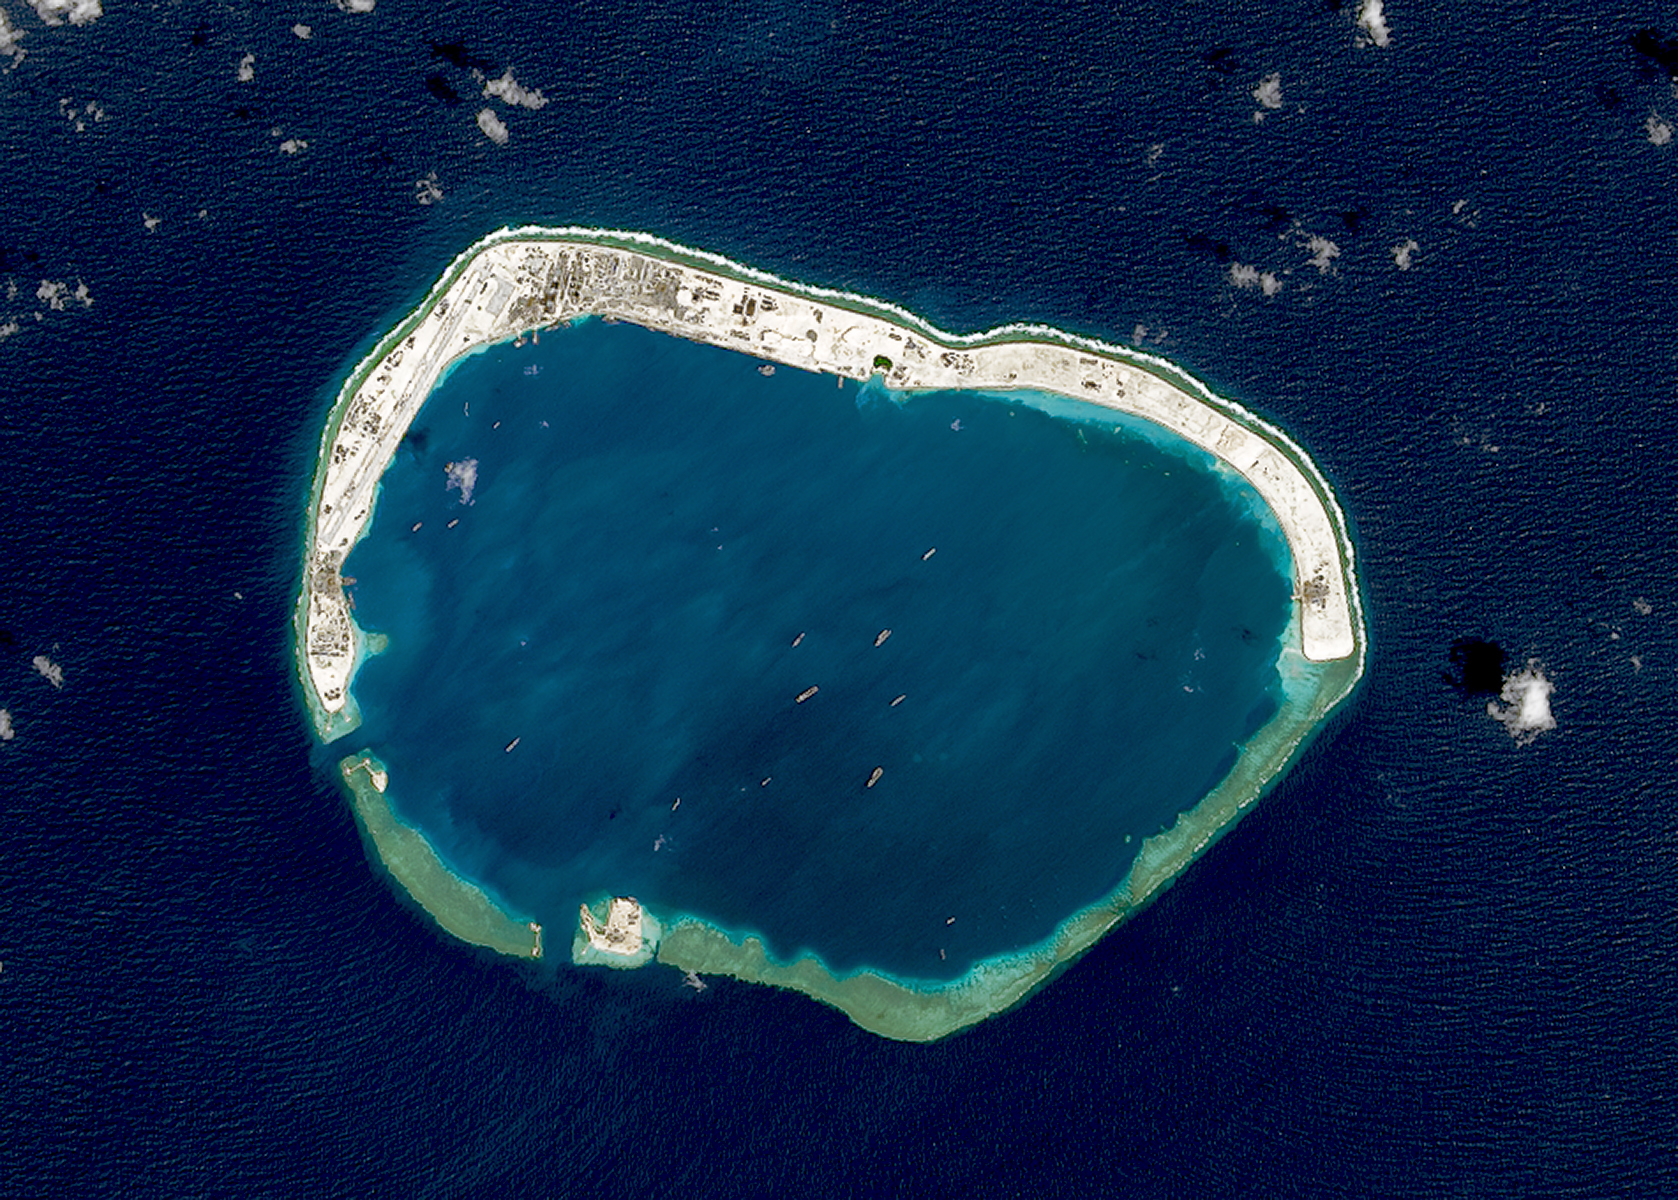 A satellite image of Mischief Reef located in the Spratly Islands in the South China Sea on Feb. 18, 2016.